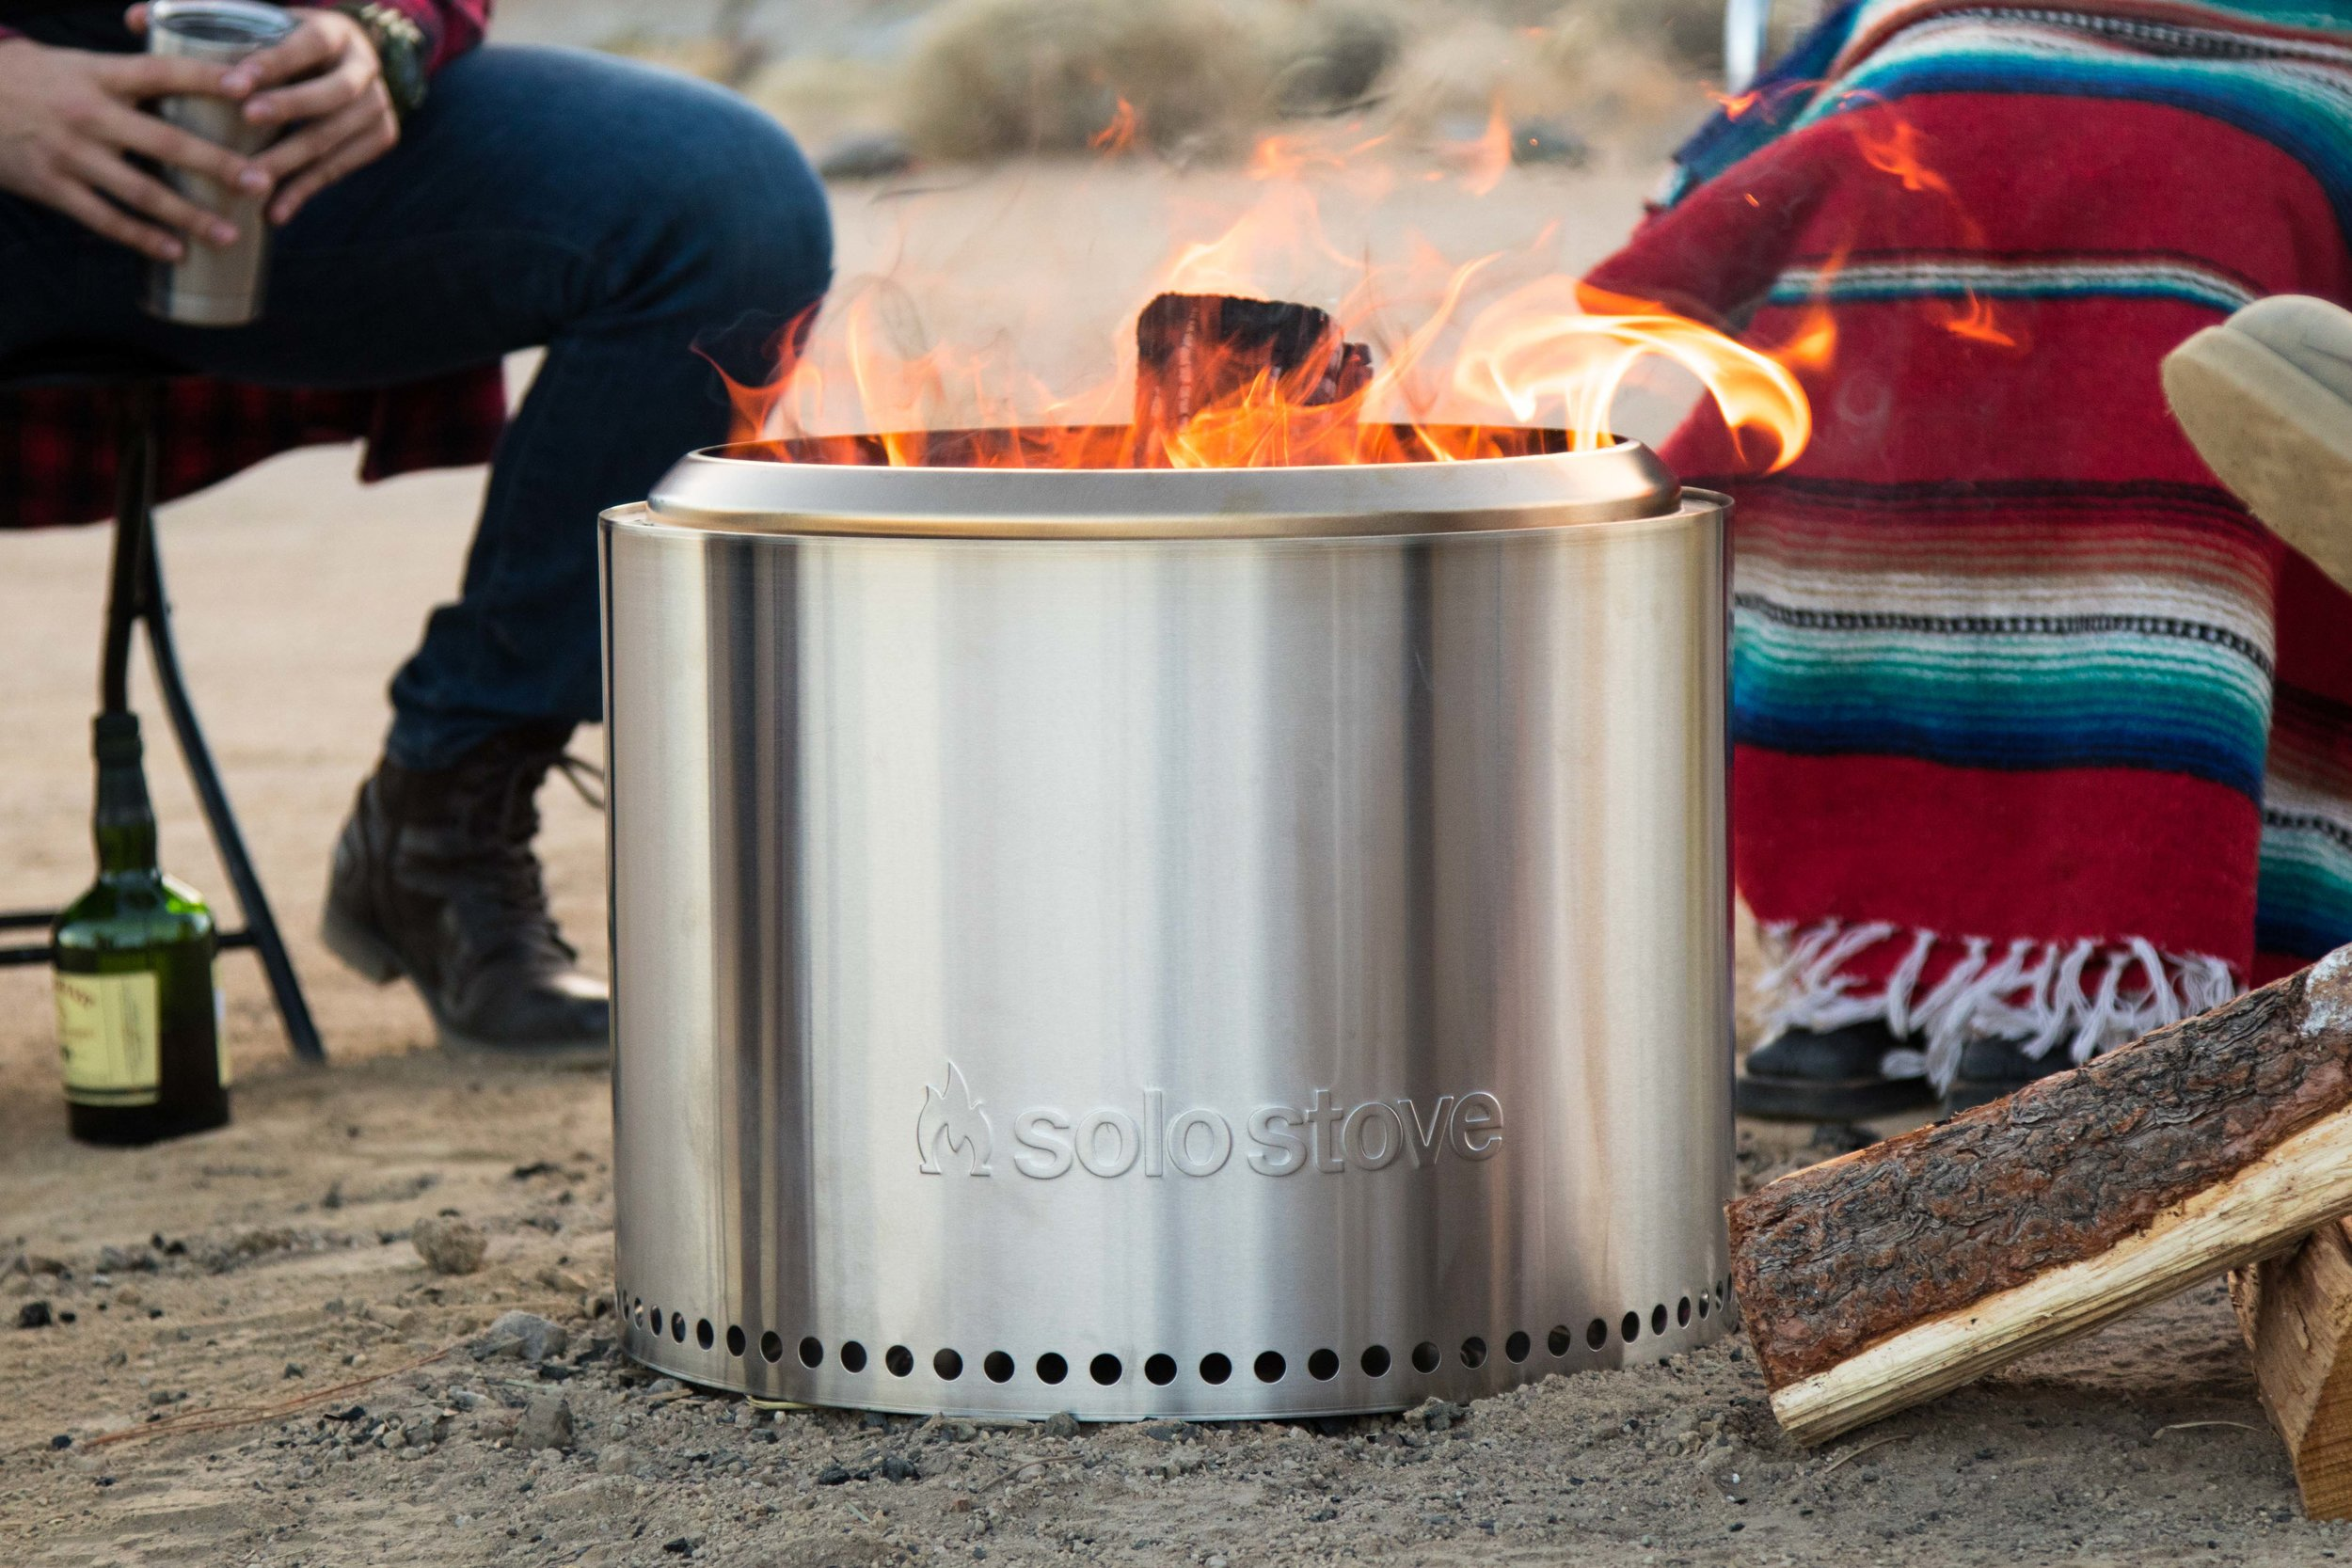 Jeremy bishop - solostove (15 of 43).jpg